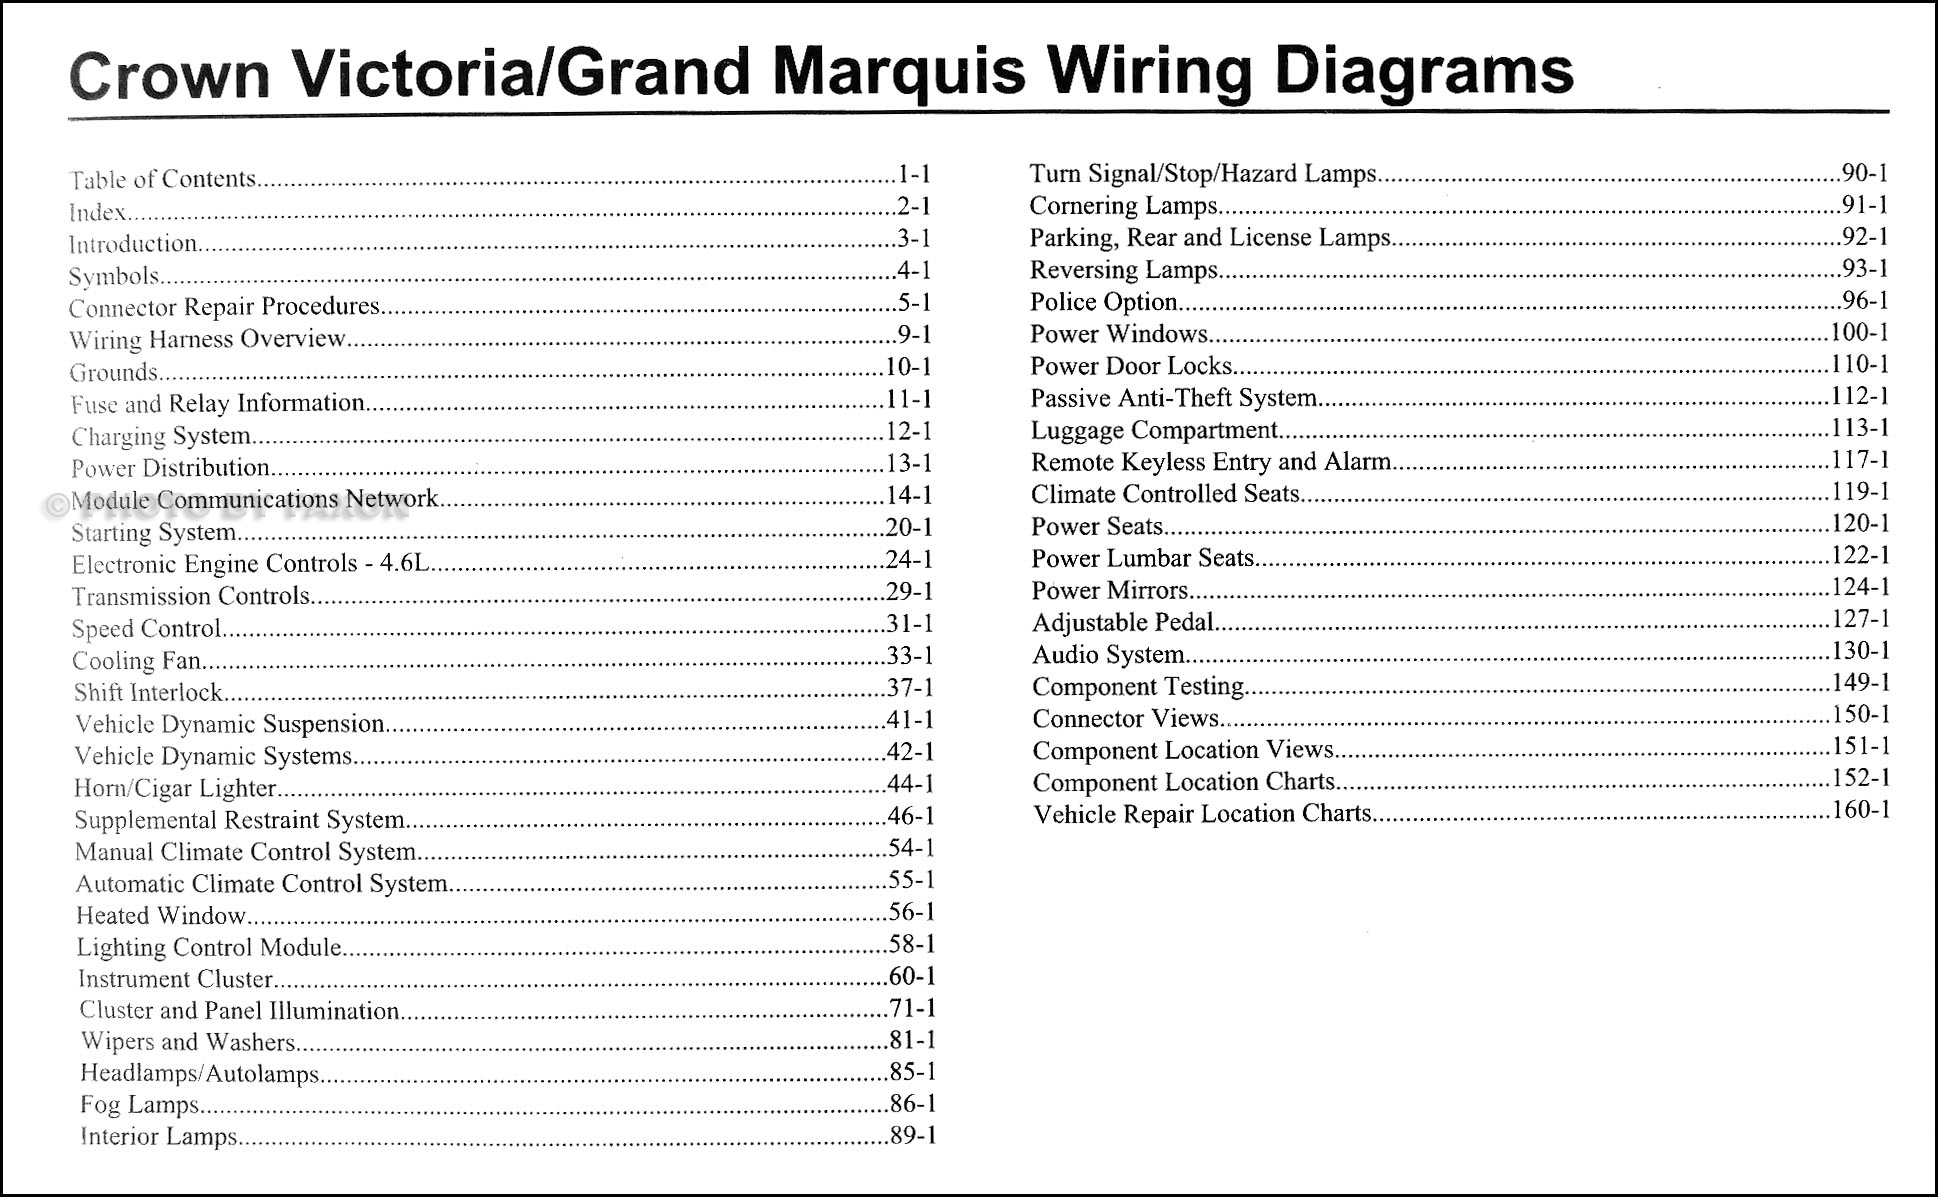 2009FordCrownVictoriaOWD TOC 2009 crown victoria & grand marquis original wiring diagram manual fuse box diagram for 2004 mercury grand marquis at mifinder.co